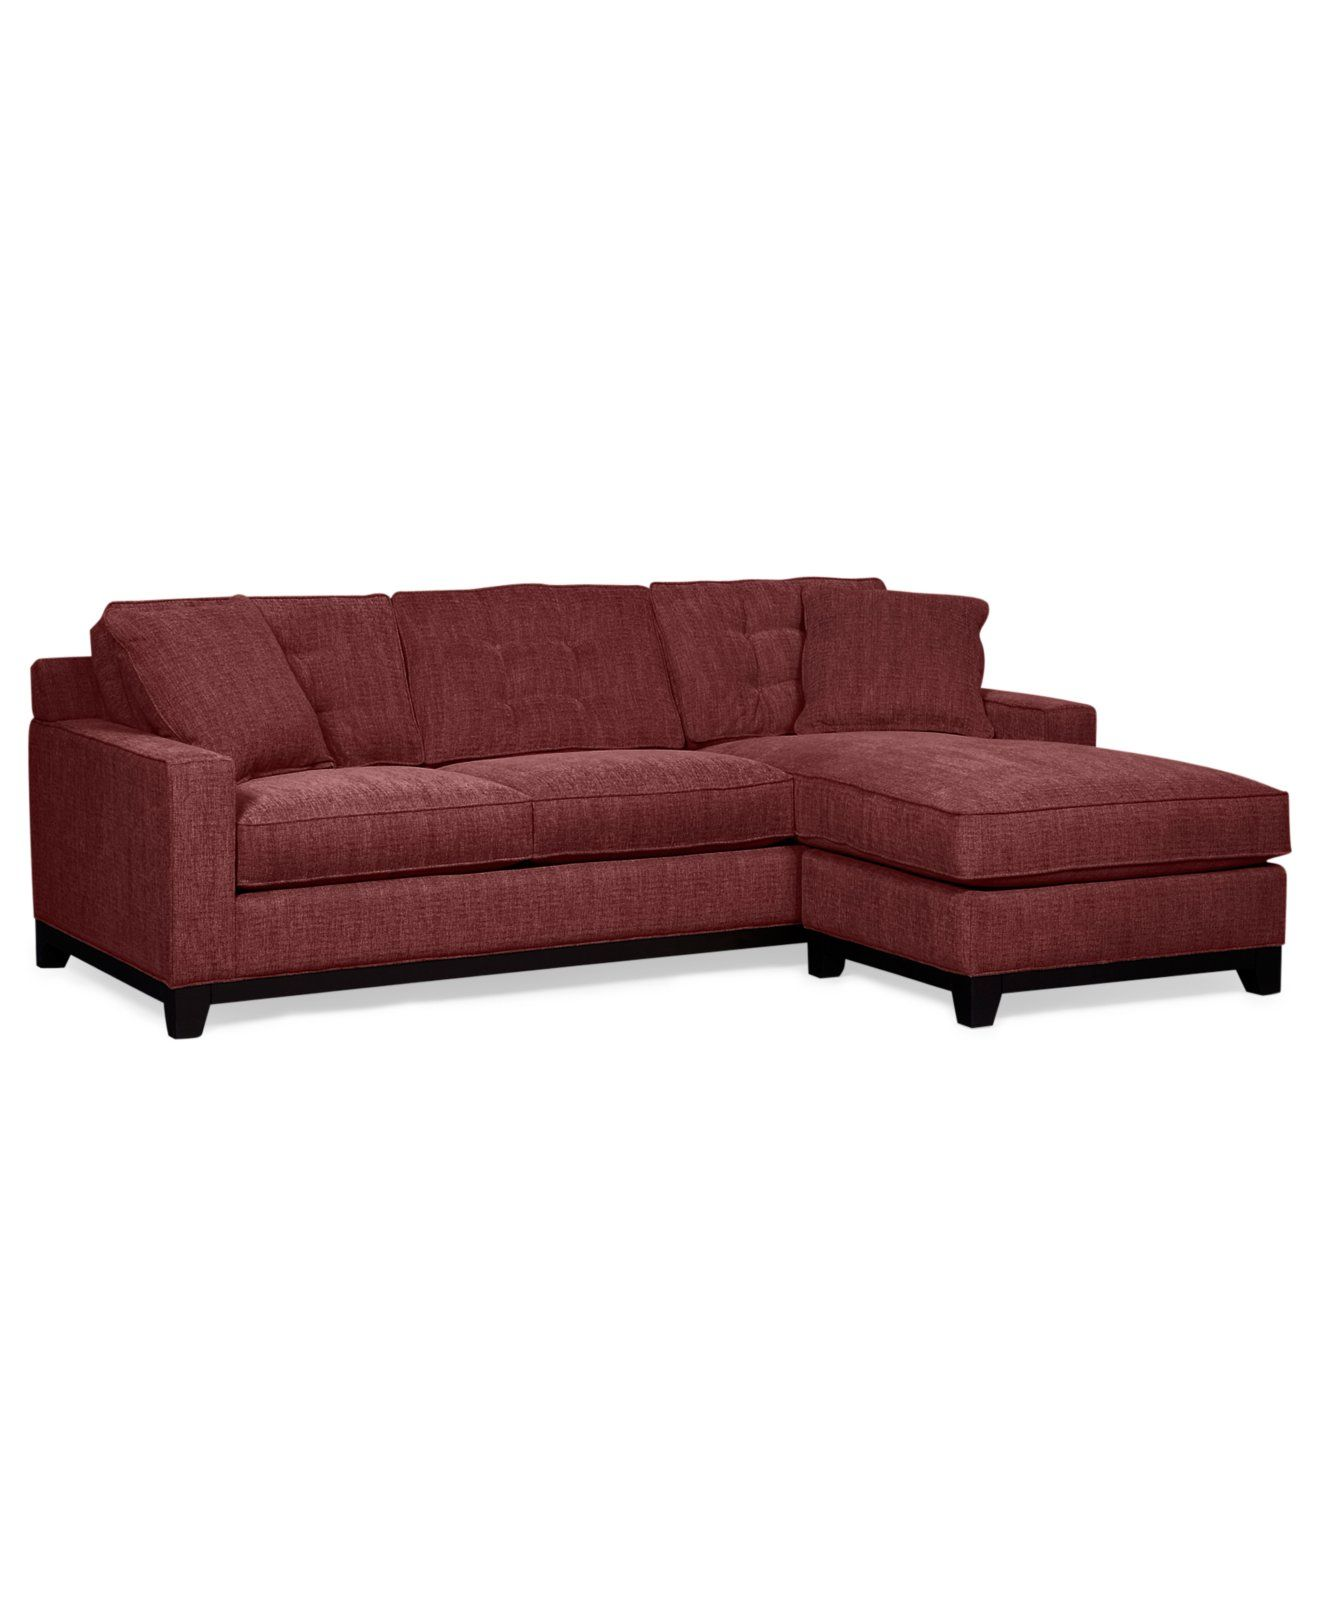 Clarke Fabric Sectional Queen Sleeper Sofa Chaise X Custom Colors Sofas Furniture Macy S